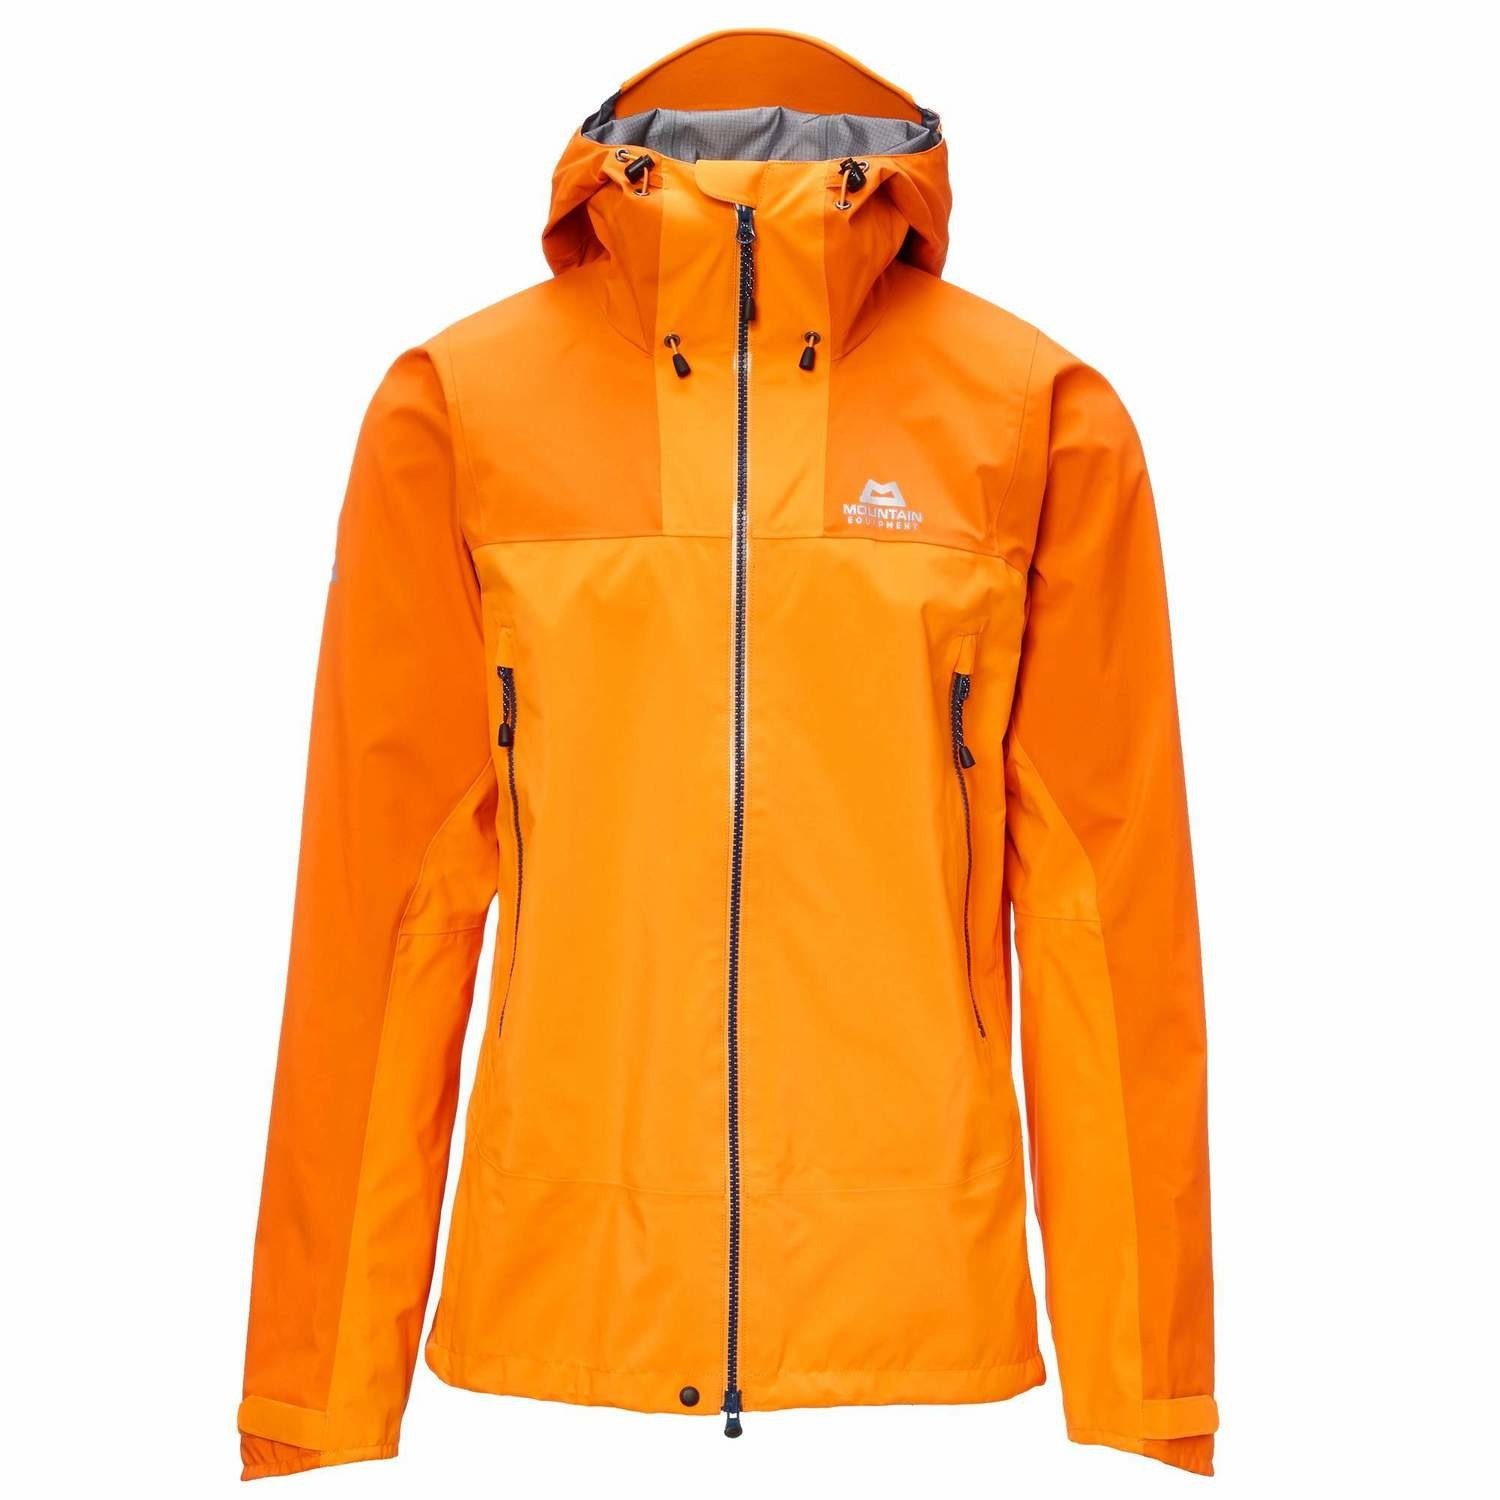 MOUNTAIN EQUIPMENT JANAK GORETEX PRO JACKET LARGE MARMALADE